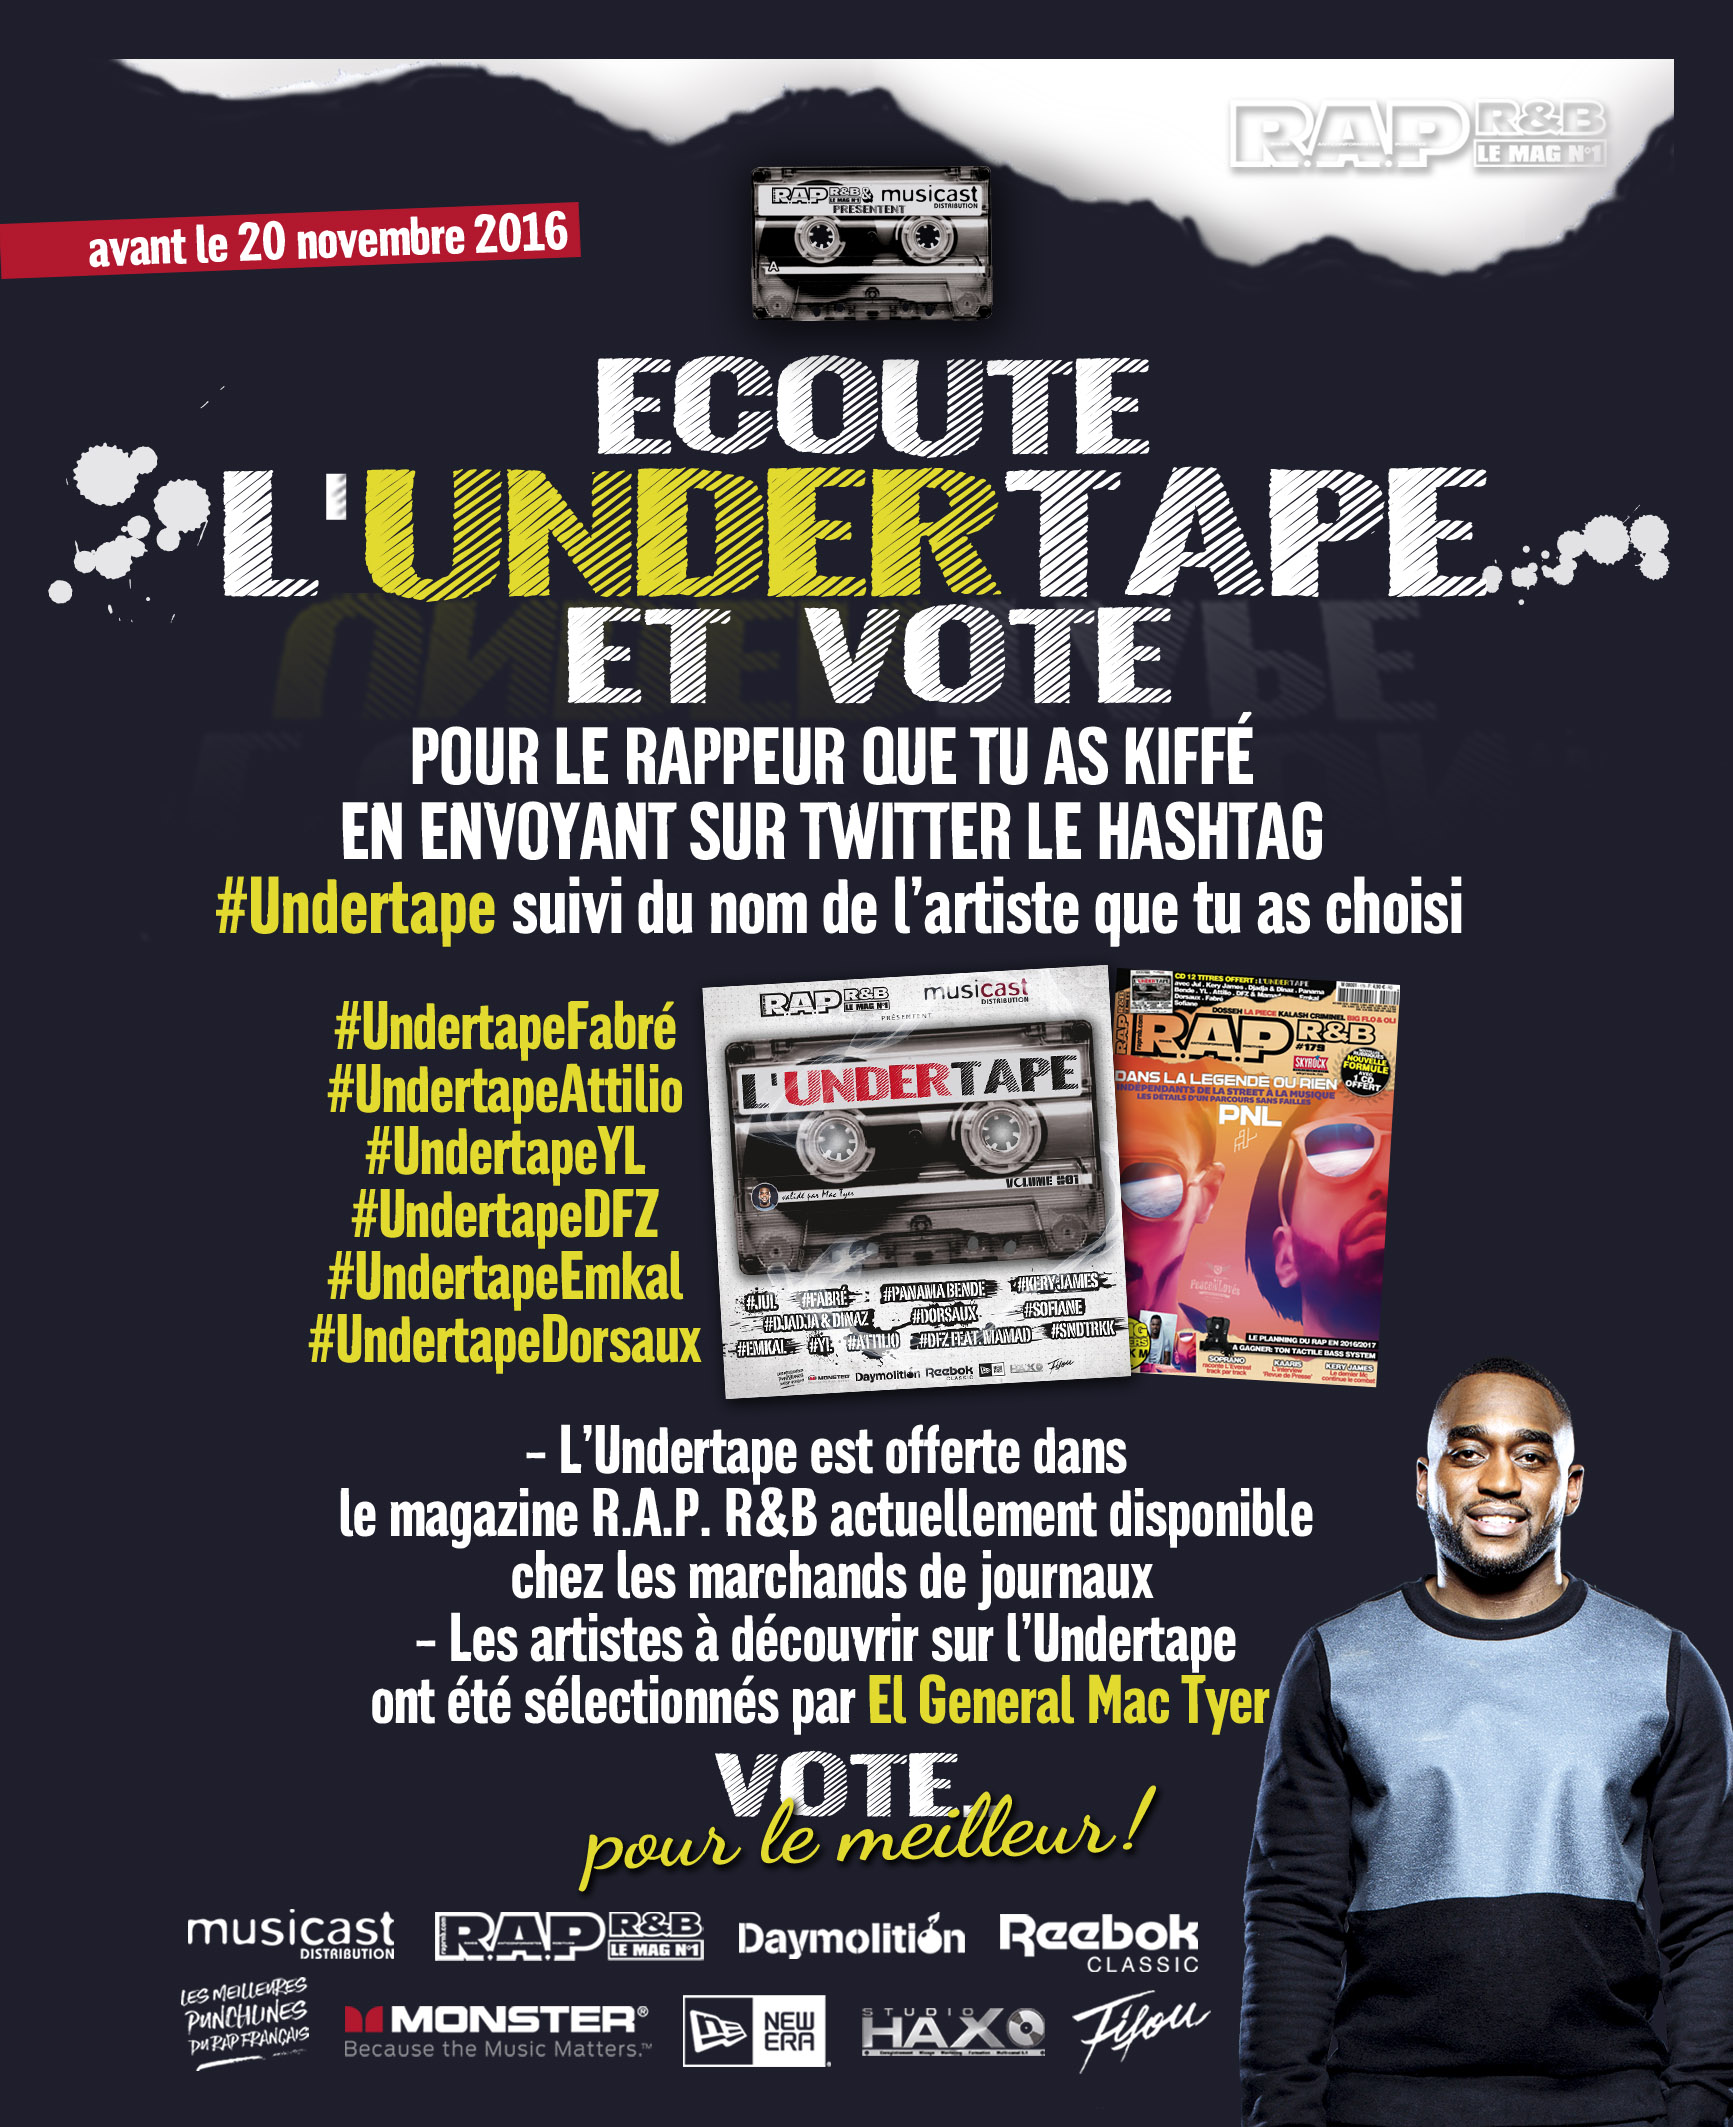 undertape-vote-1